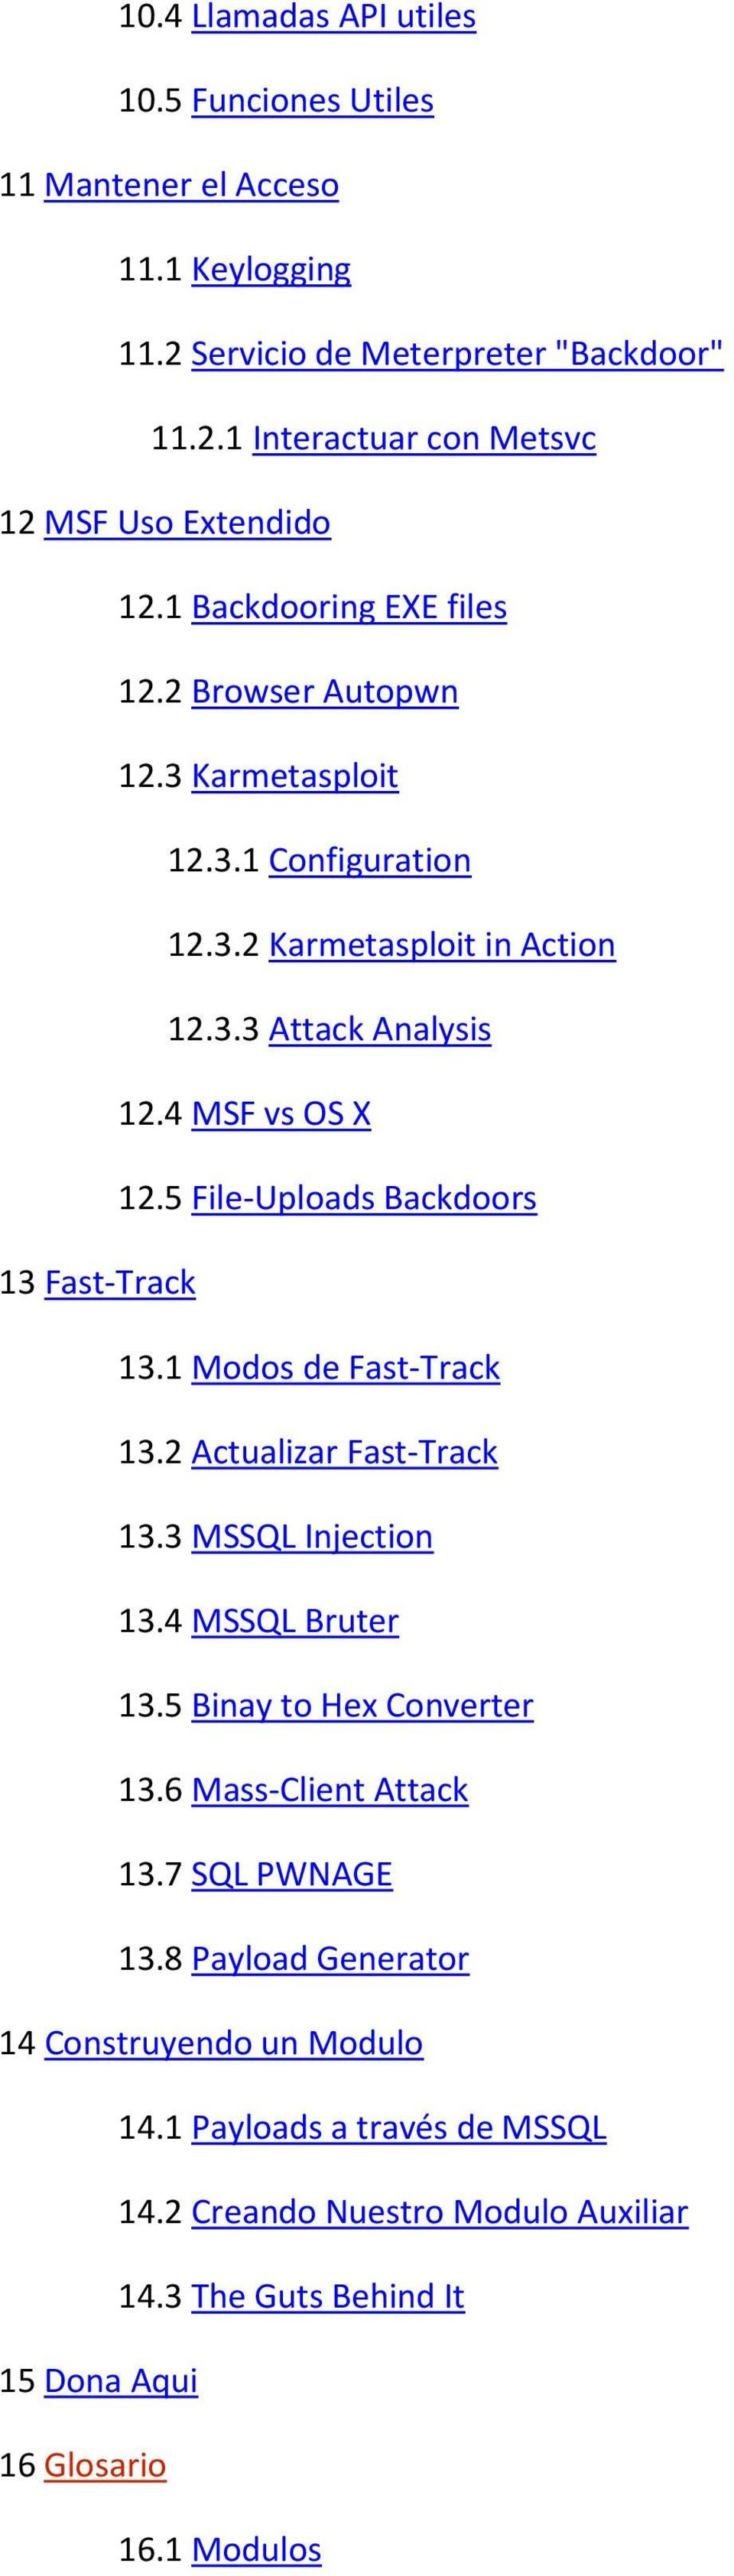 5 File-Uploads Backdoors 13 Fast-Track 13.1 Modos de Fast-Track 13.2 Actualizar Fast-Track 13.3 MSSQL Injection 13.4 MSSQL Bruter 13.5 Binay to Hex Converter 13.